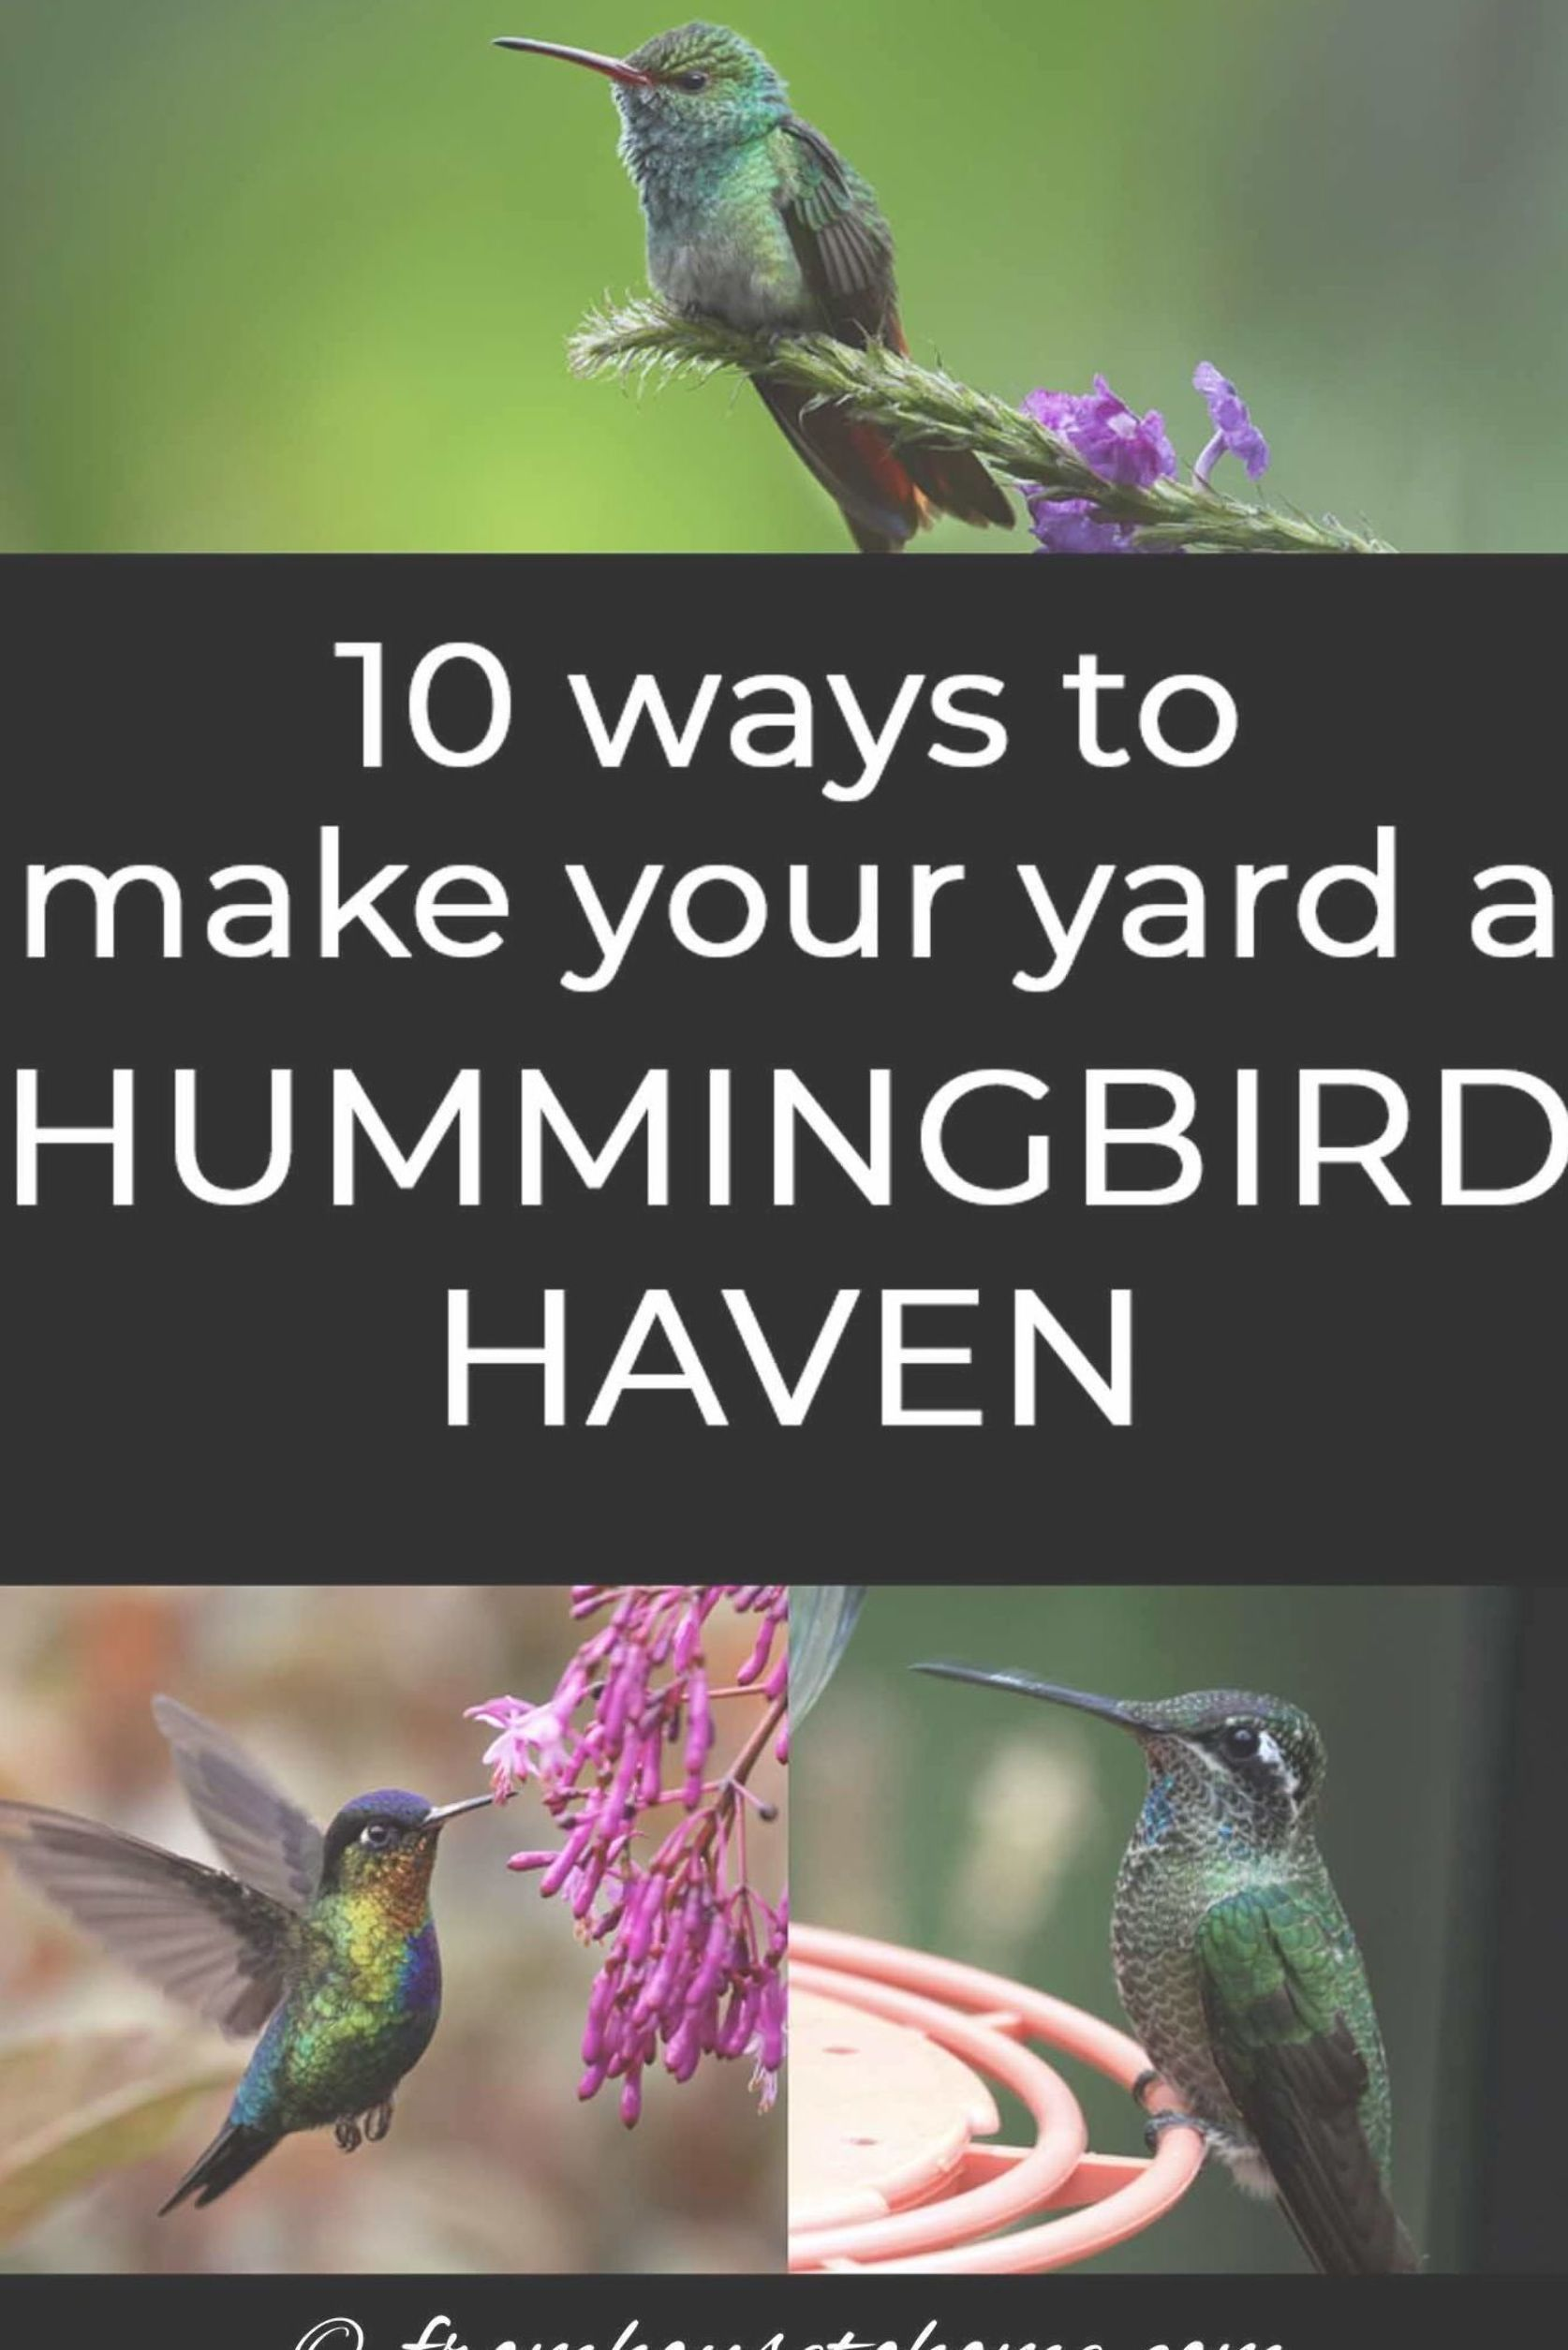 Attracting Hummingbirds To Your Garden Is Not As Difficult As It Might Seem Find Out Which How To Attract Hummingbirds Humming Bird Feeders Hummingbird Plants